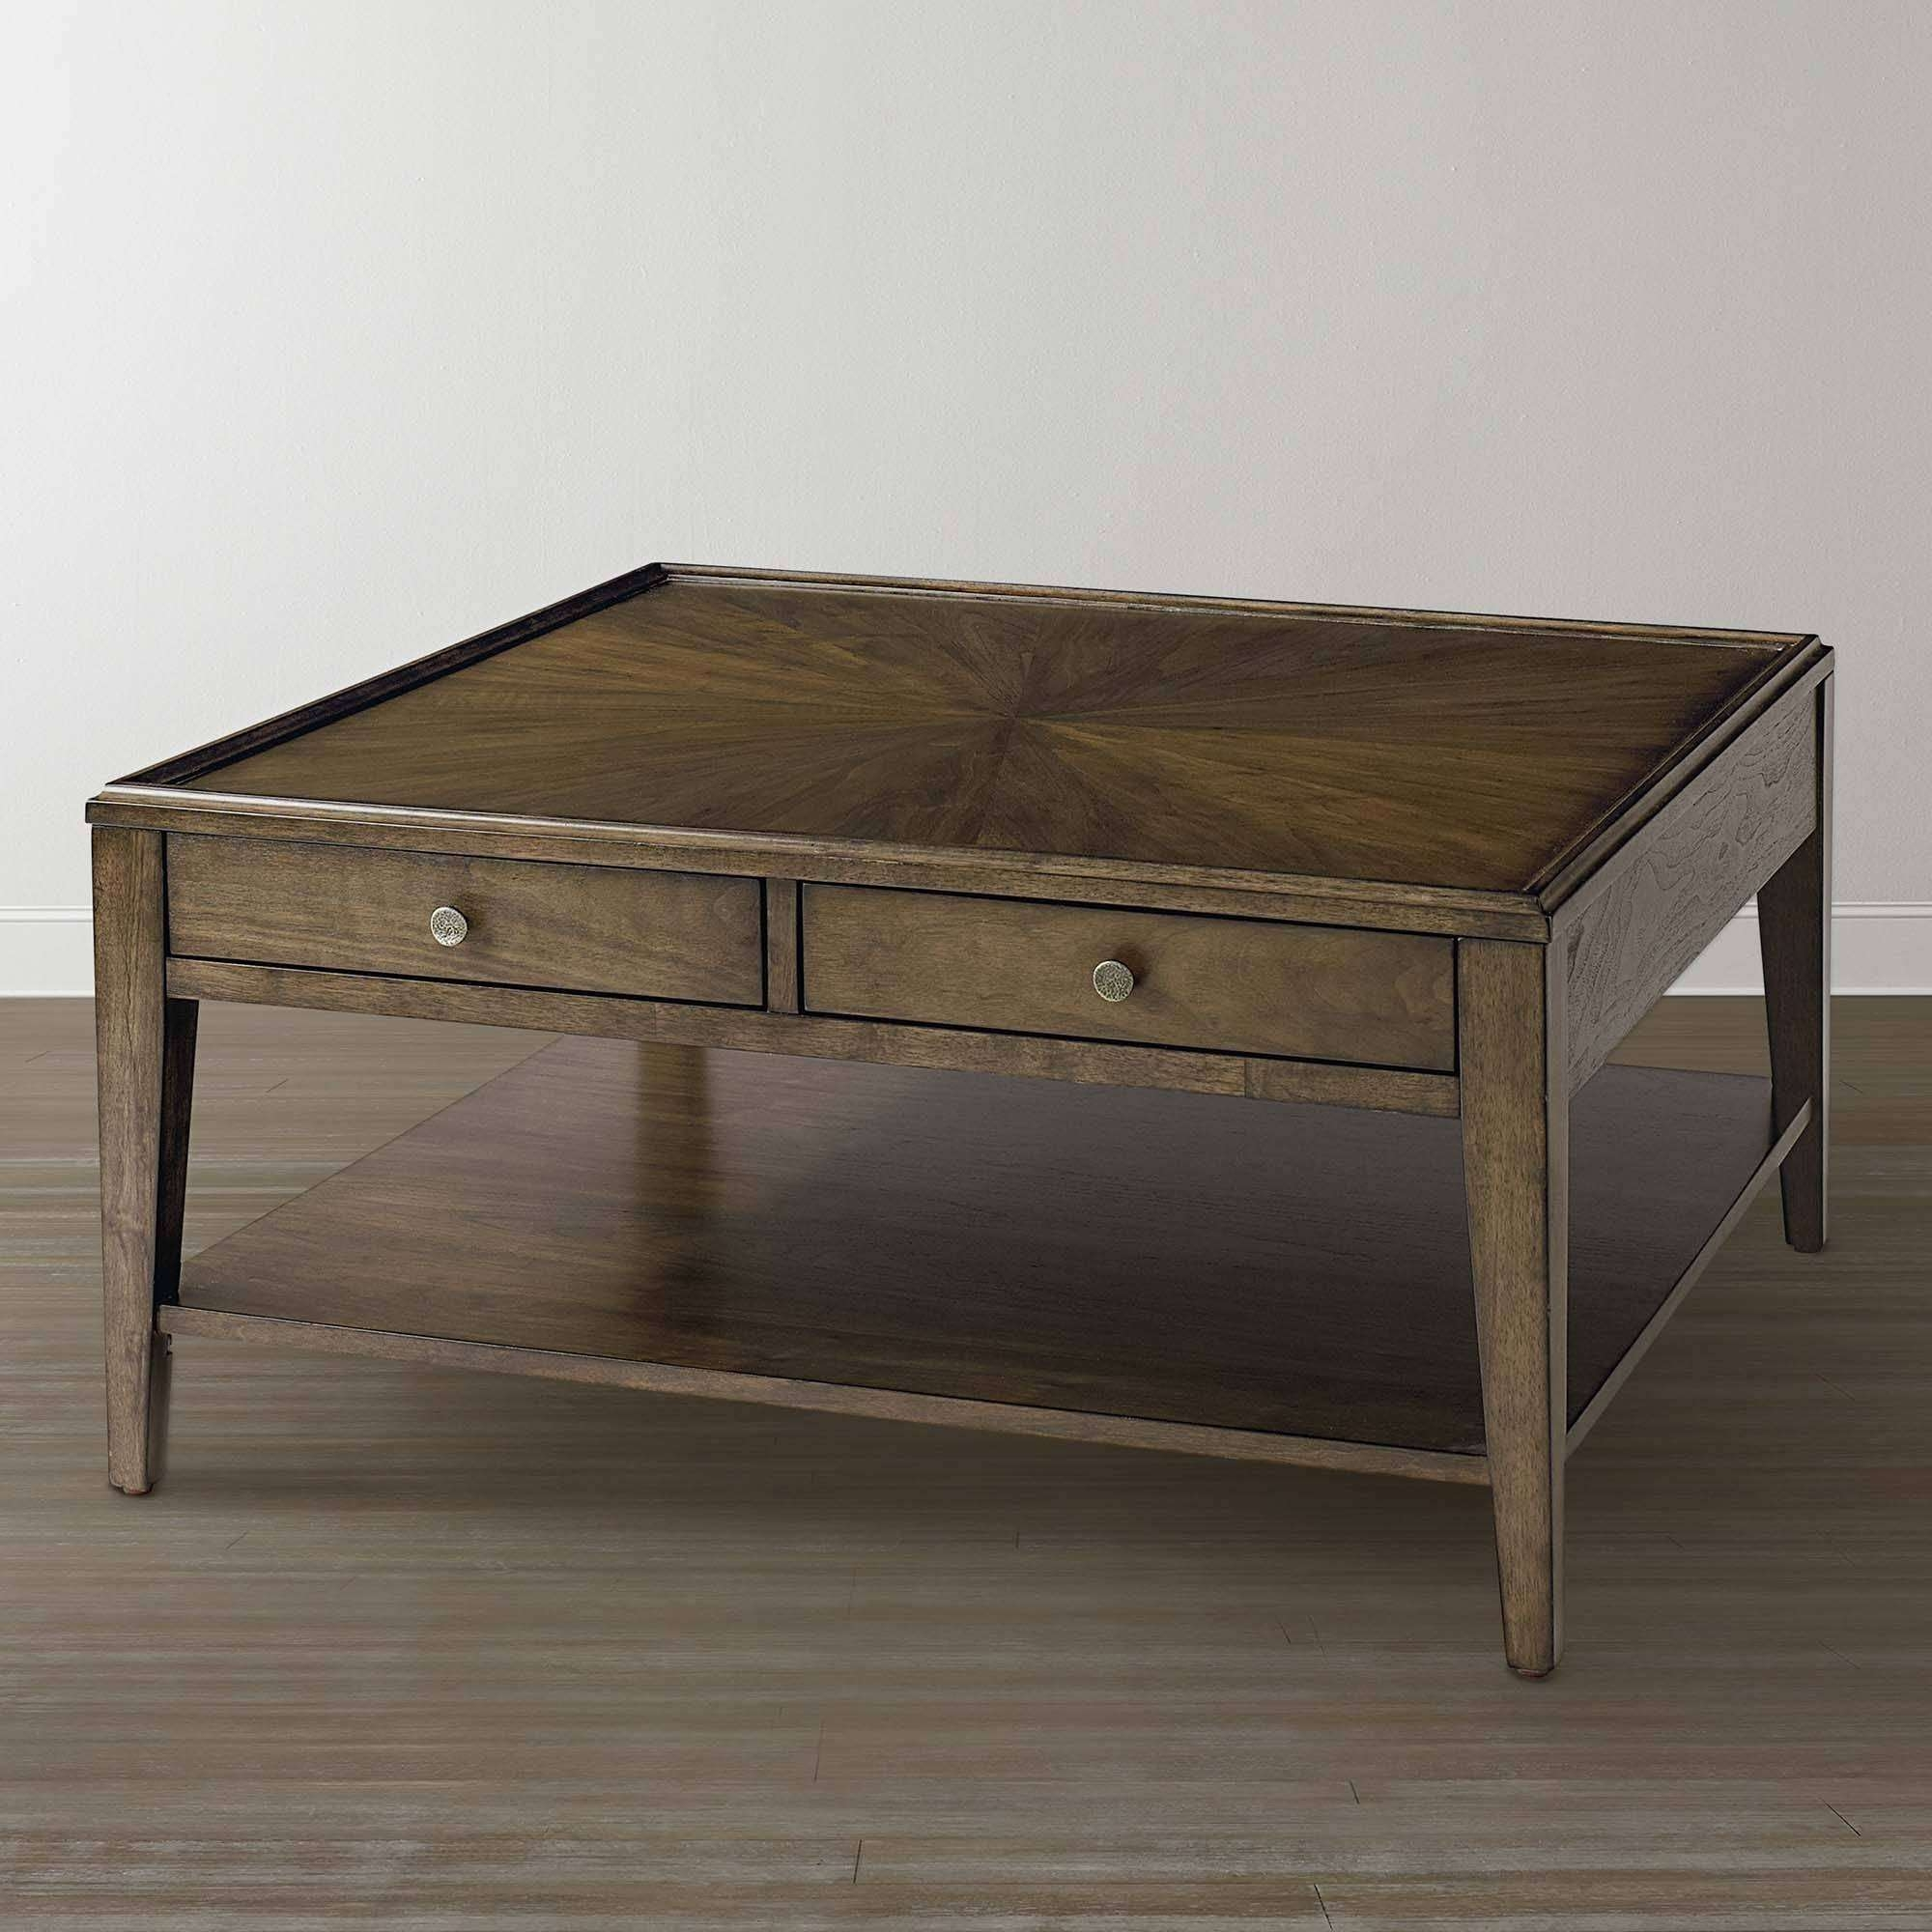 Small Square Coffee Table With Storage 20 The Best Square Storage Coffee Table